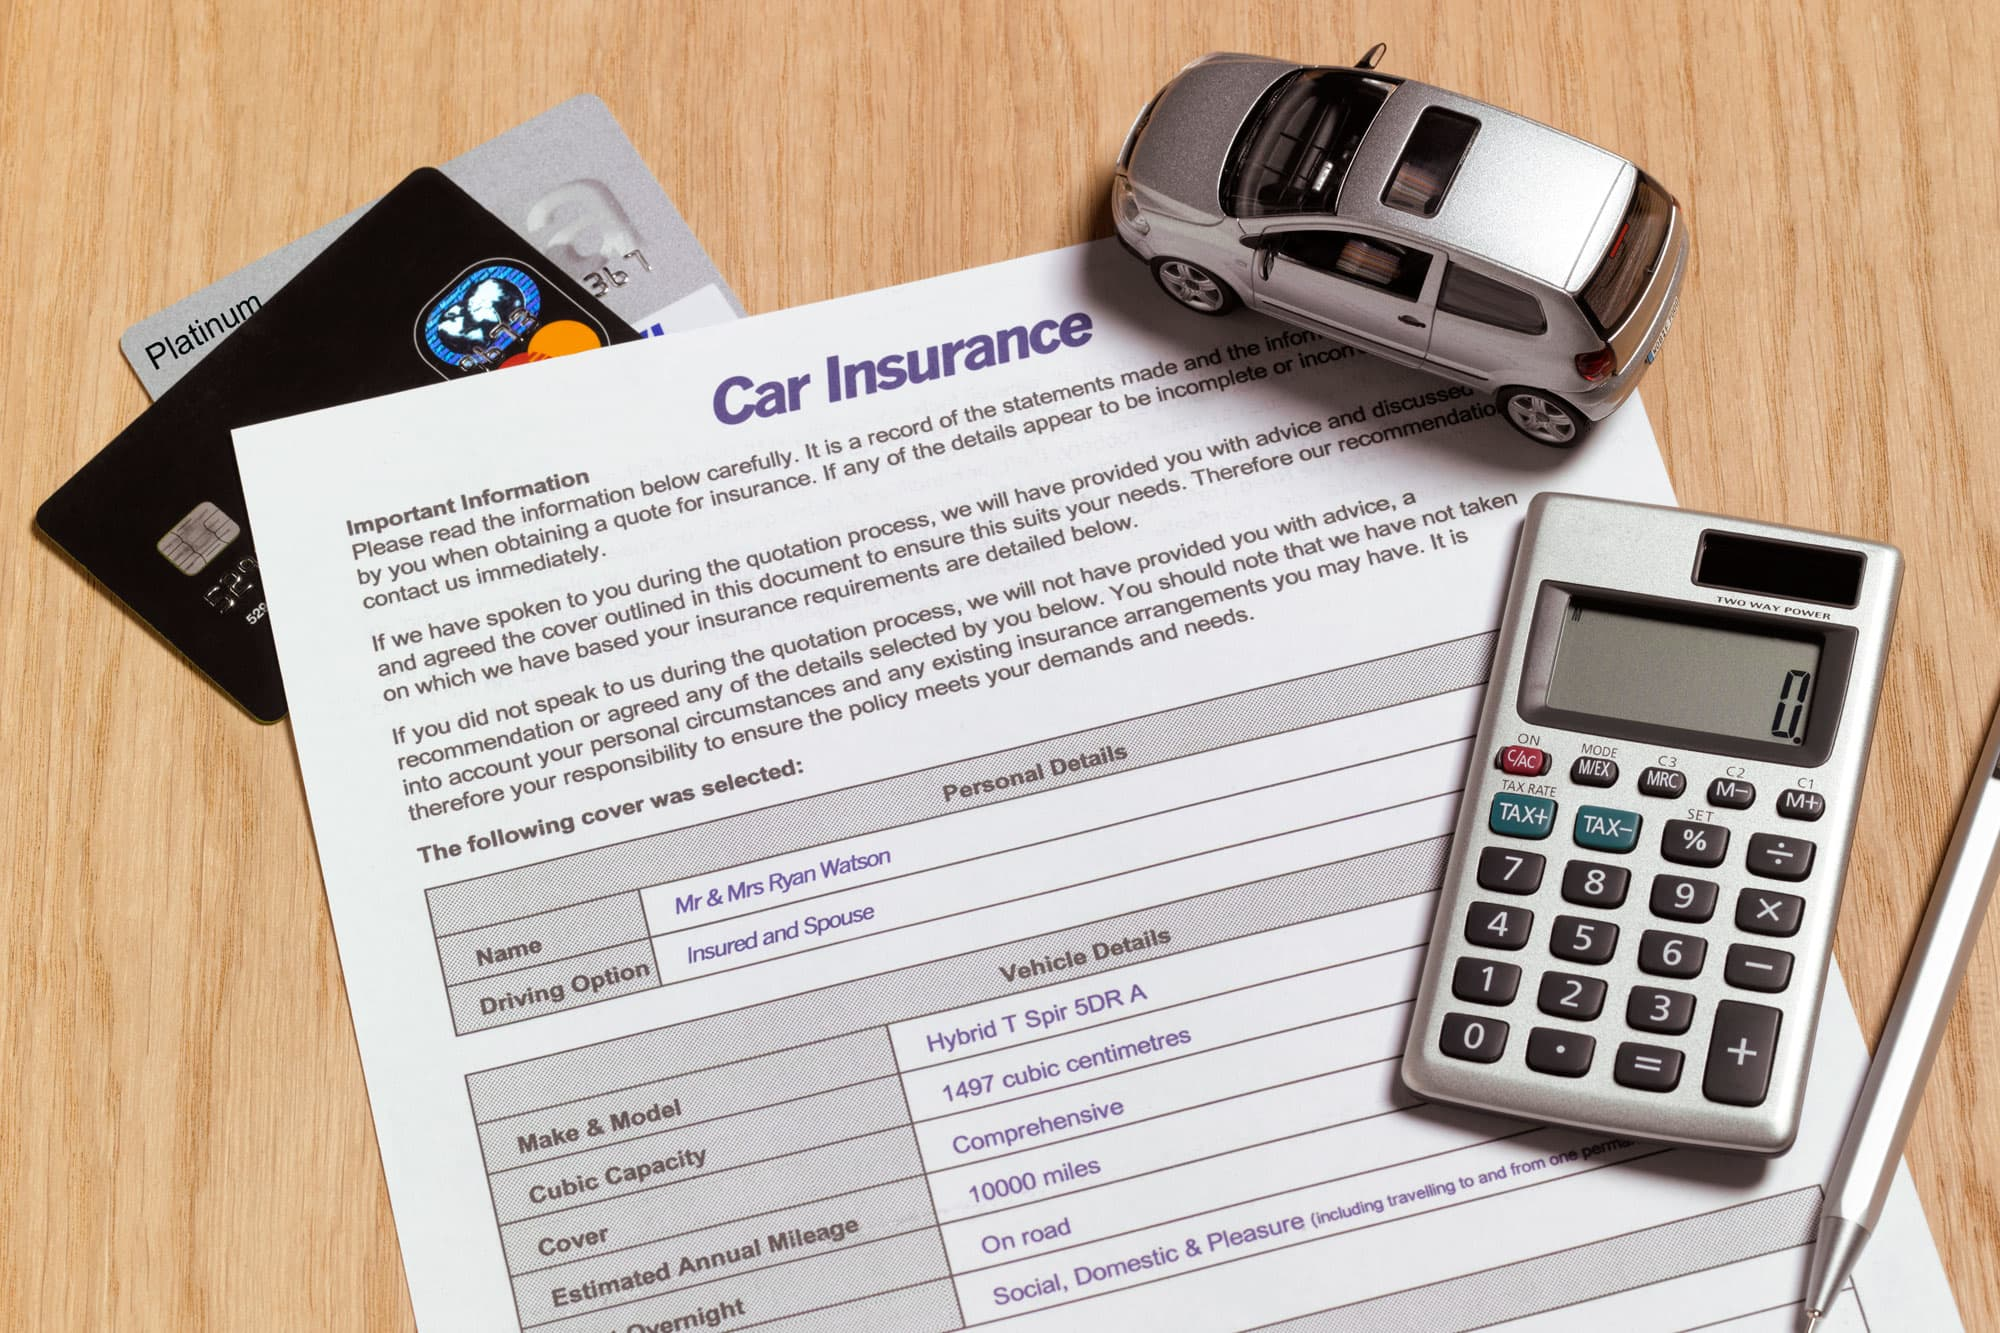 Lying on insurance forms can come back to haunt you